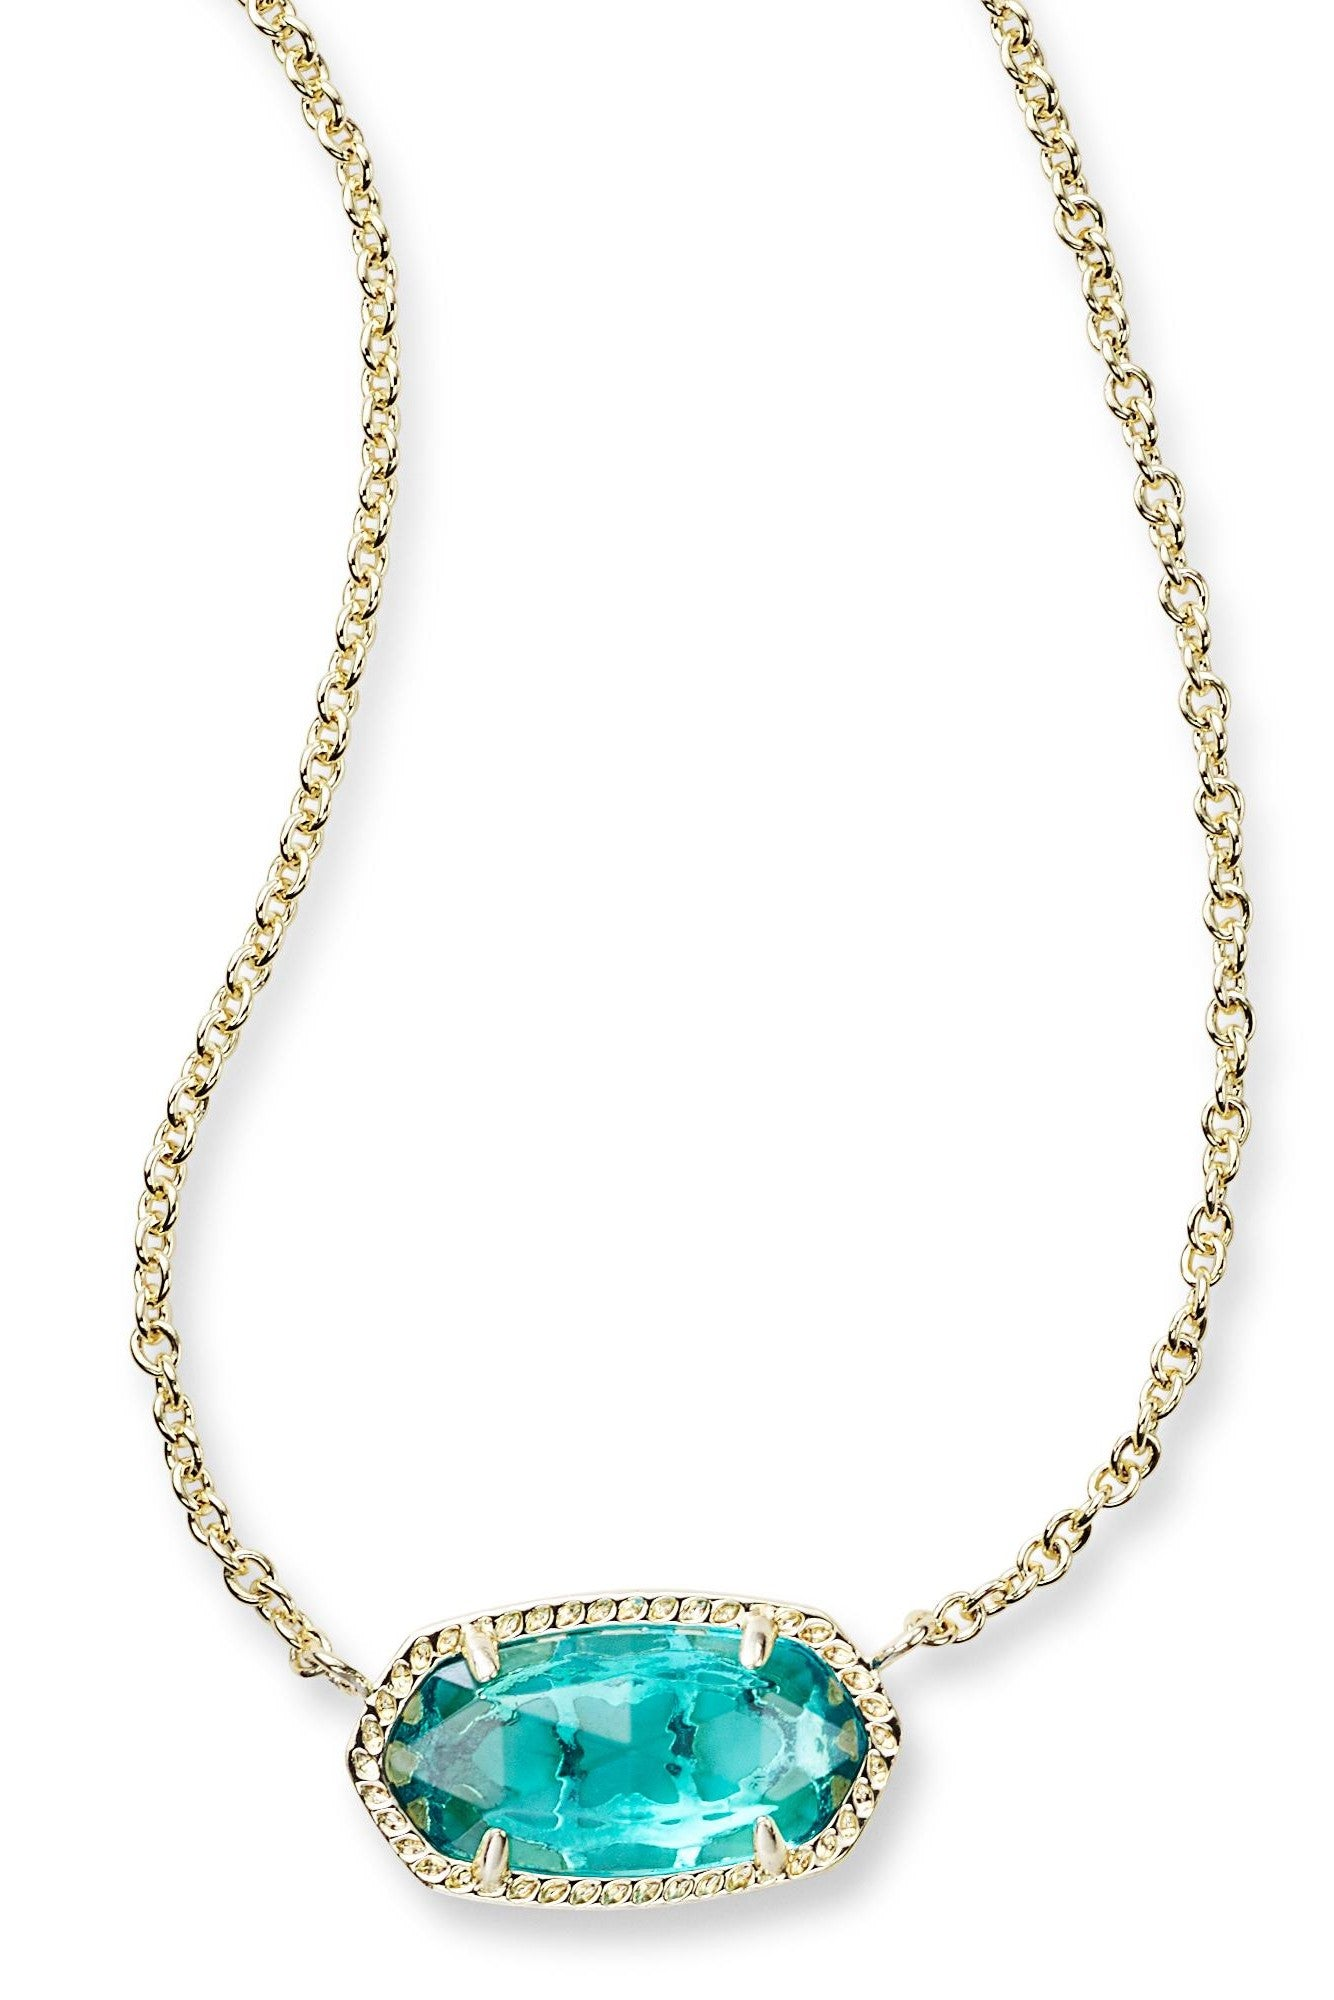 Kendra Scot Elisa Pendant Necklace In London Blue